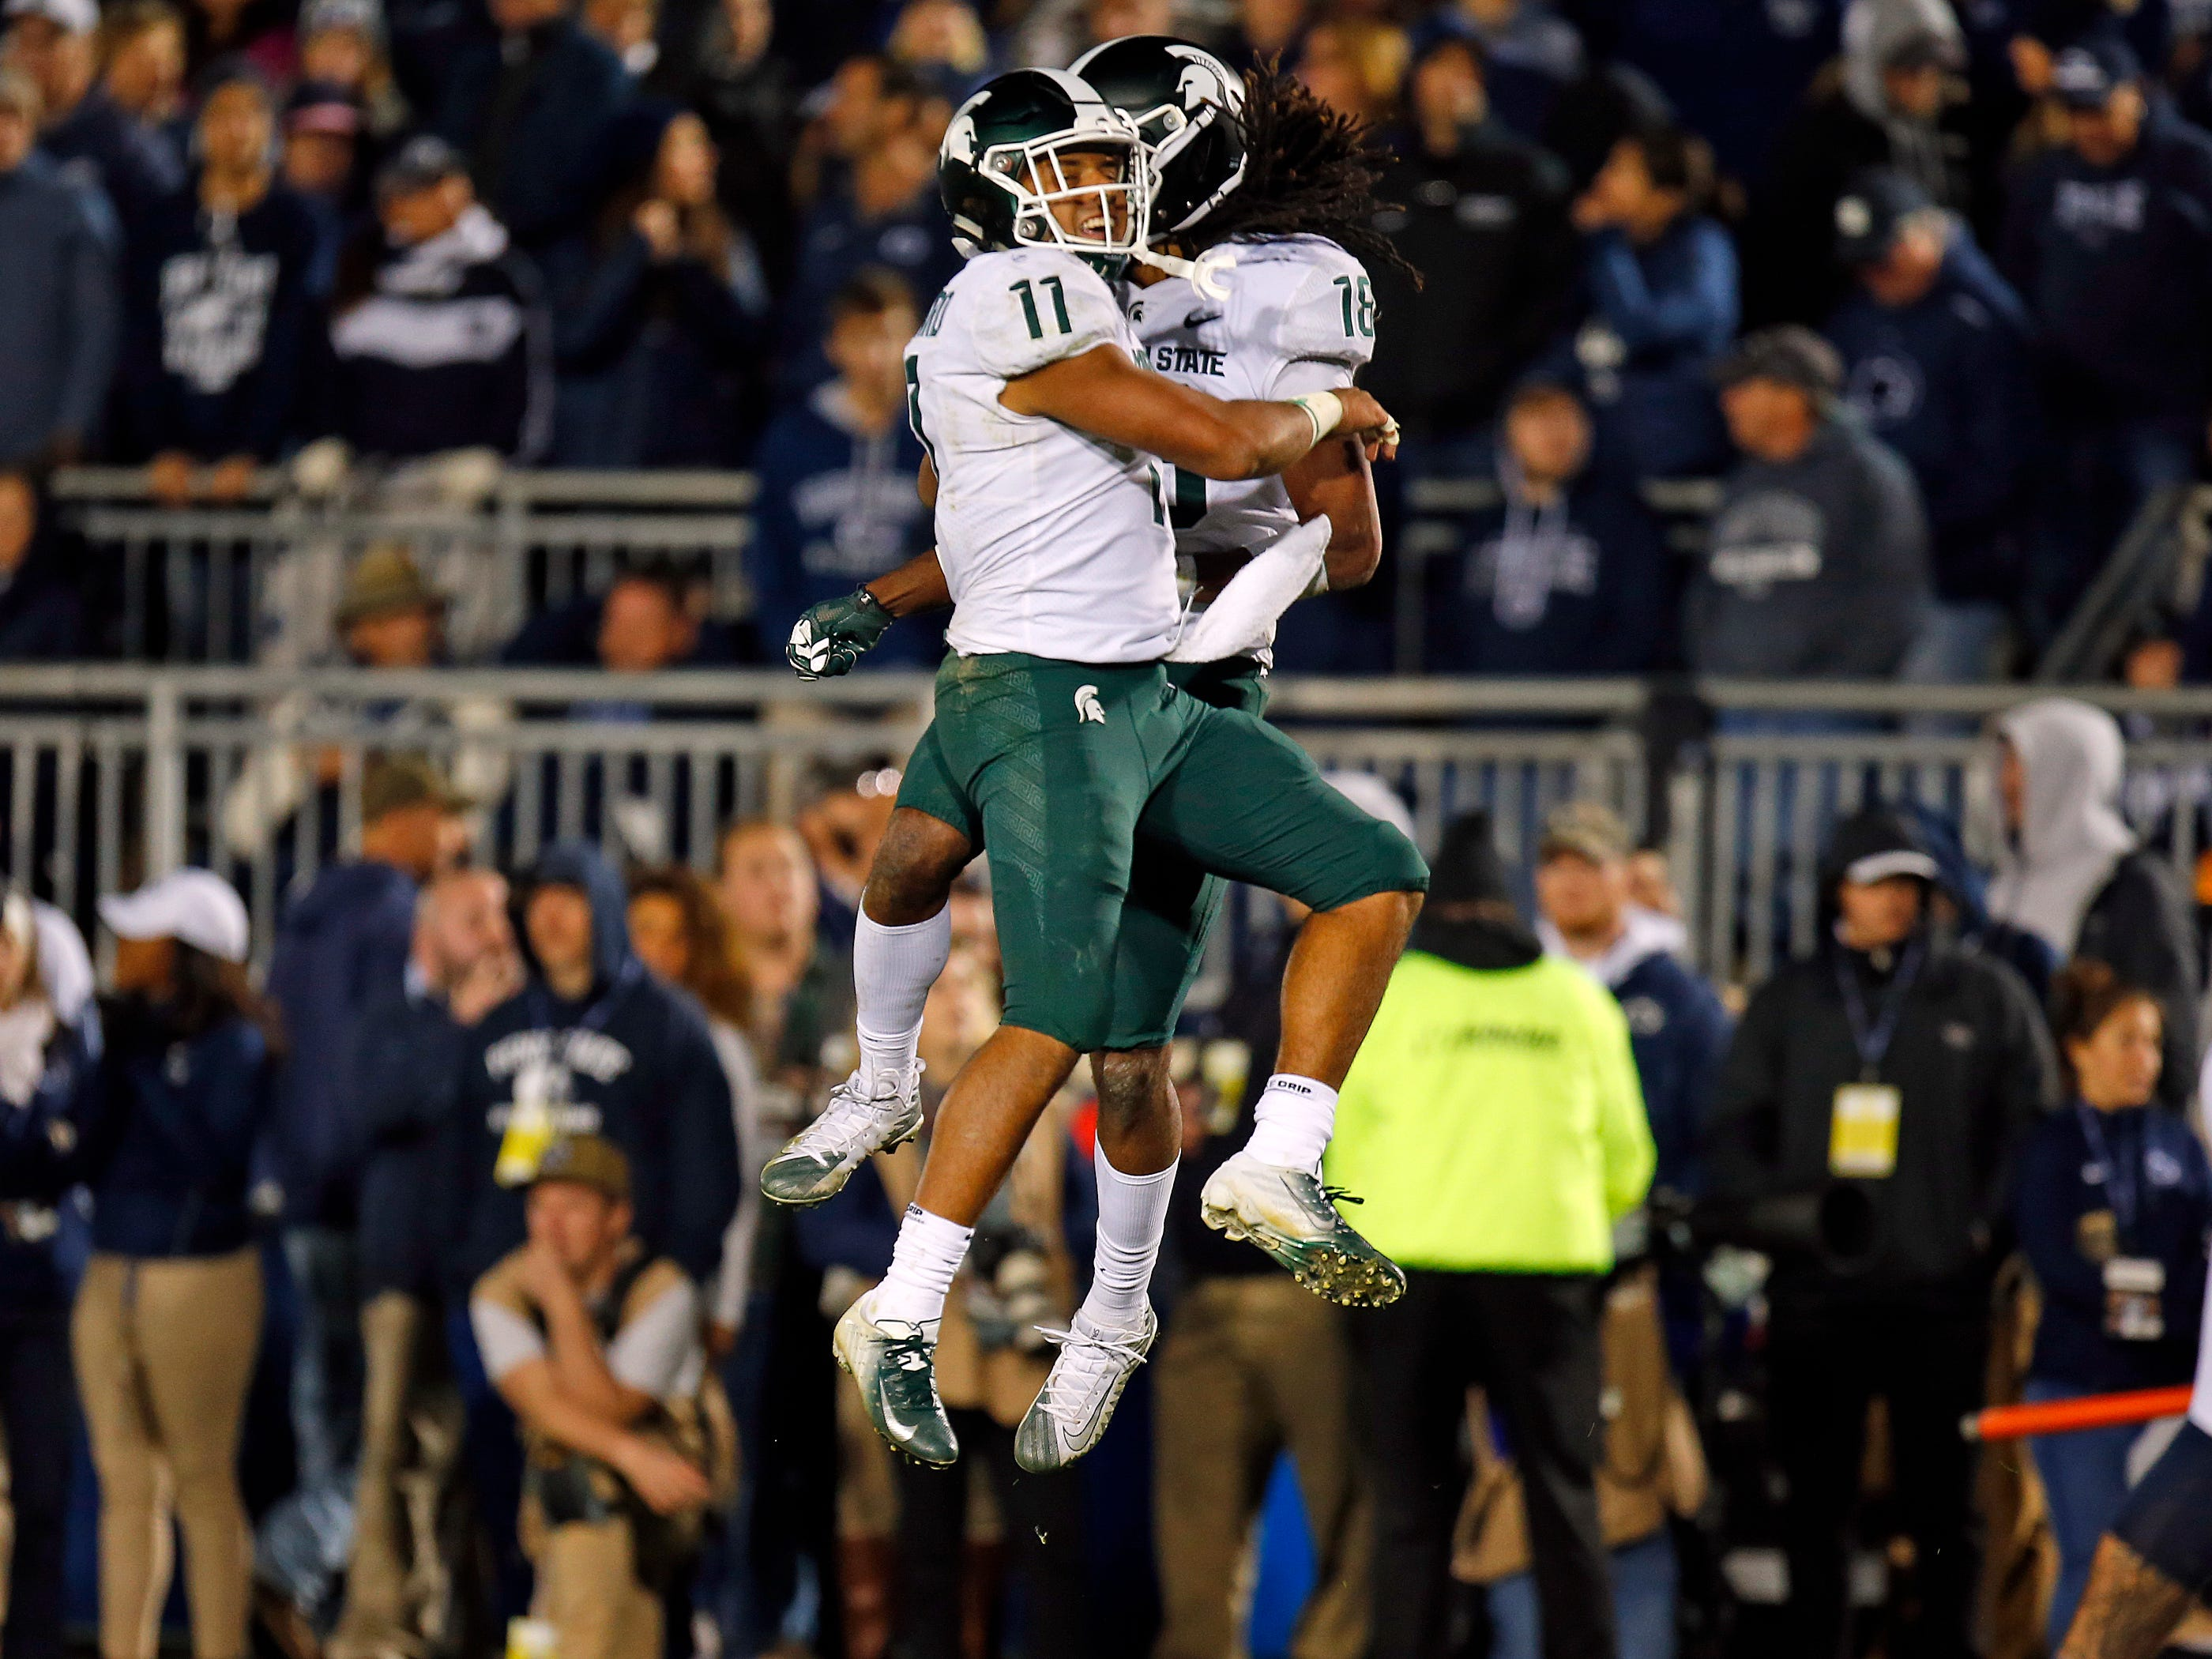 STATE COLLEGE, PA - OCTOBER 13:  Felton Davis III #18 of the Michigan State Spartans celebrates with Connor Heyward #11 of the Michigan State Spartans after catching a 25 yard touchdown pass in the fourth quarter against the Penn State Nittany Lions on October 13, 2018 at Beaver Stadium in State College, Pennsylvania.  (Photo by Justin K. Aller/Getty Images)